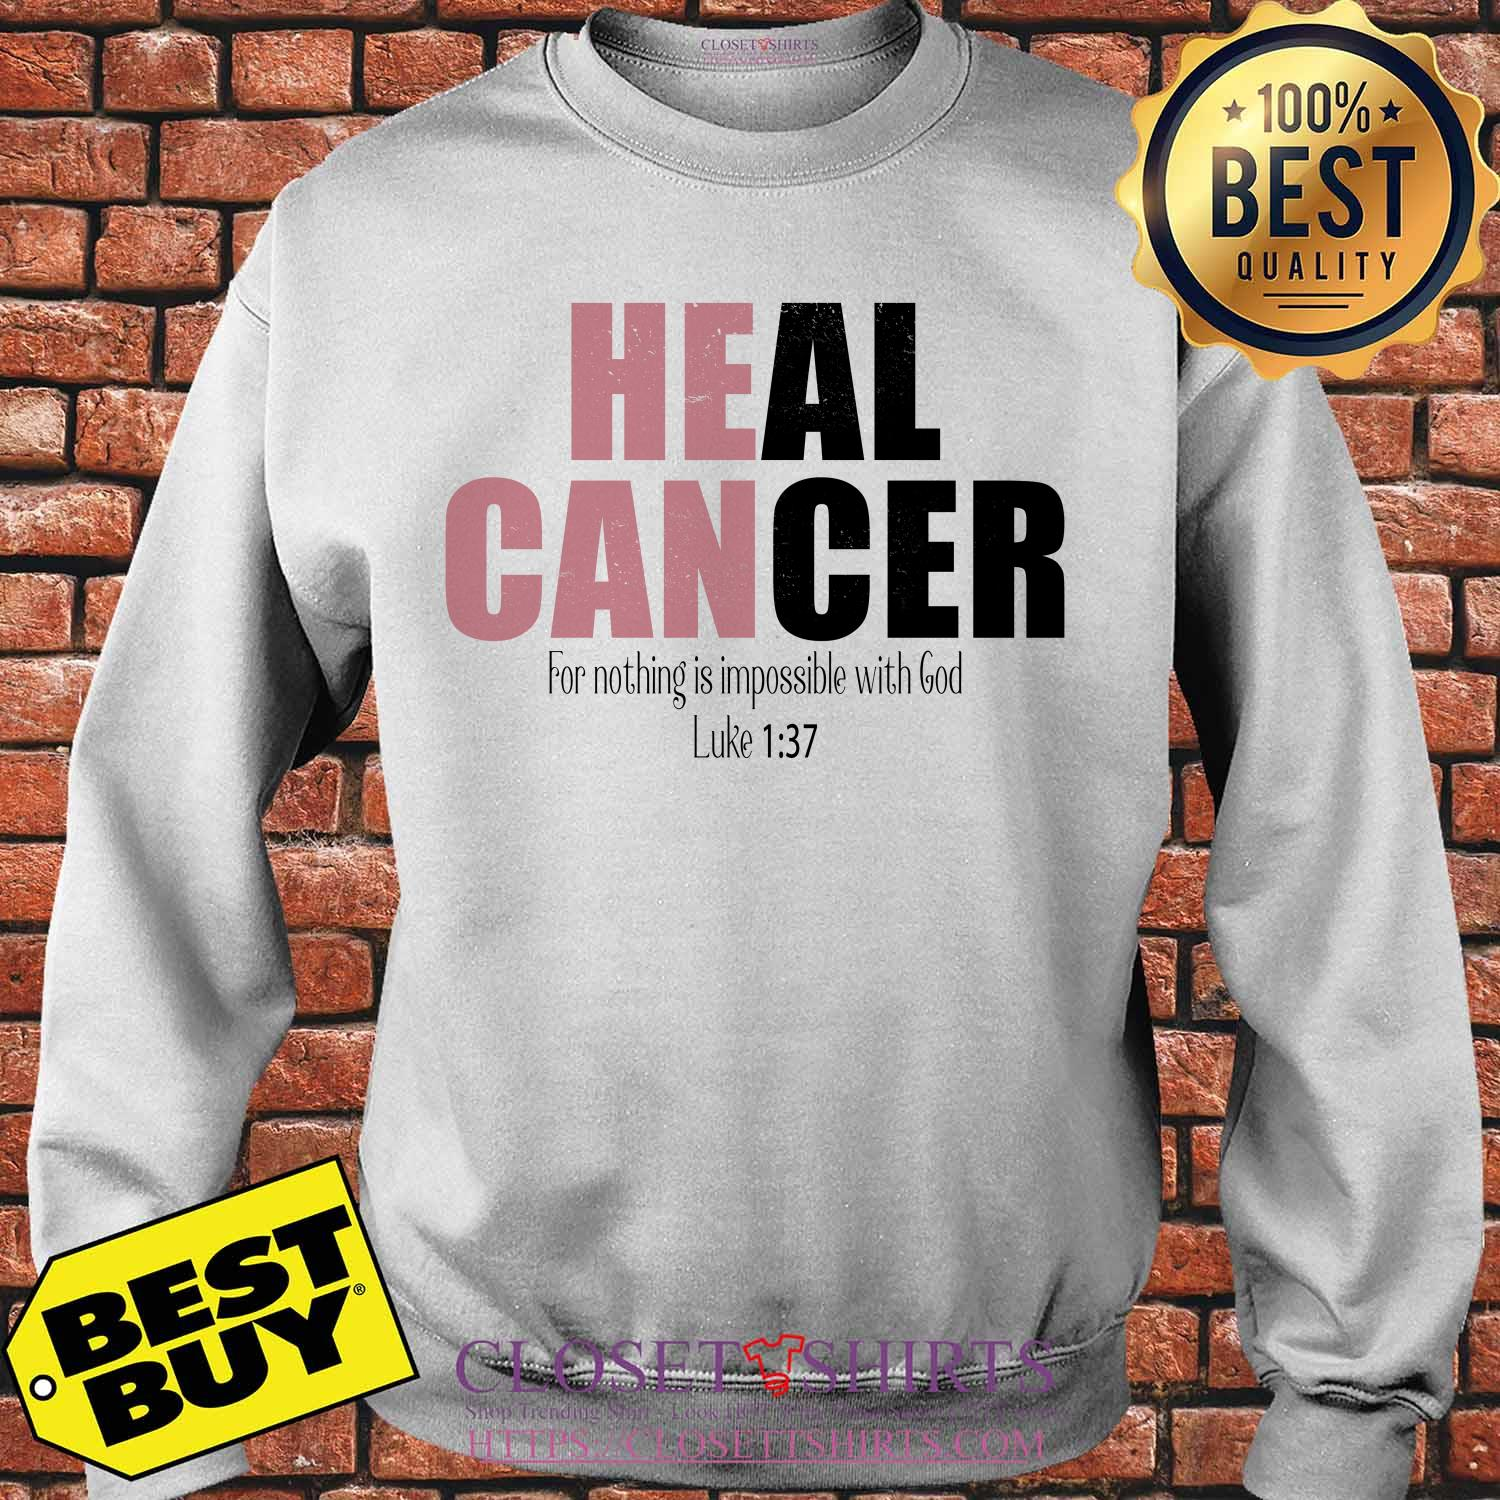 Heal Cancer For Nothing Is Impossible With God Luke 1:37 Sweatshirt